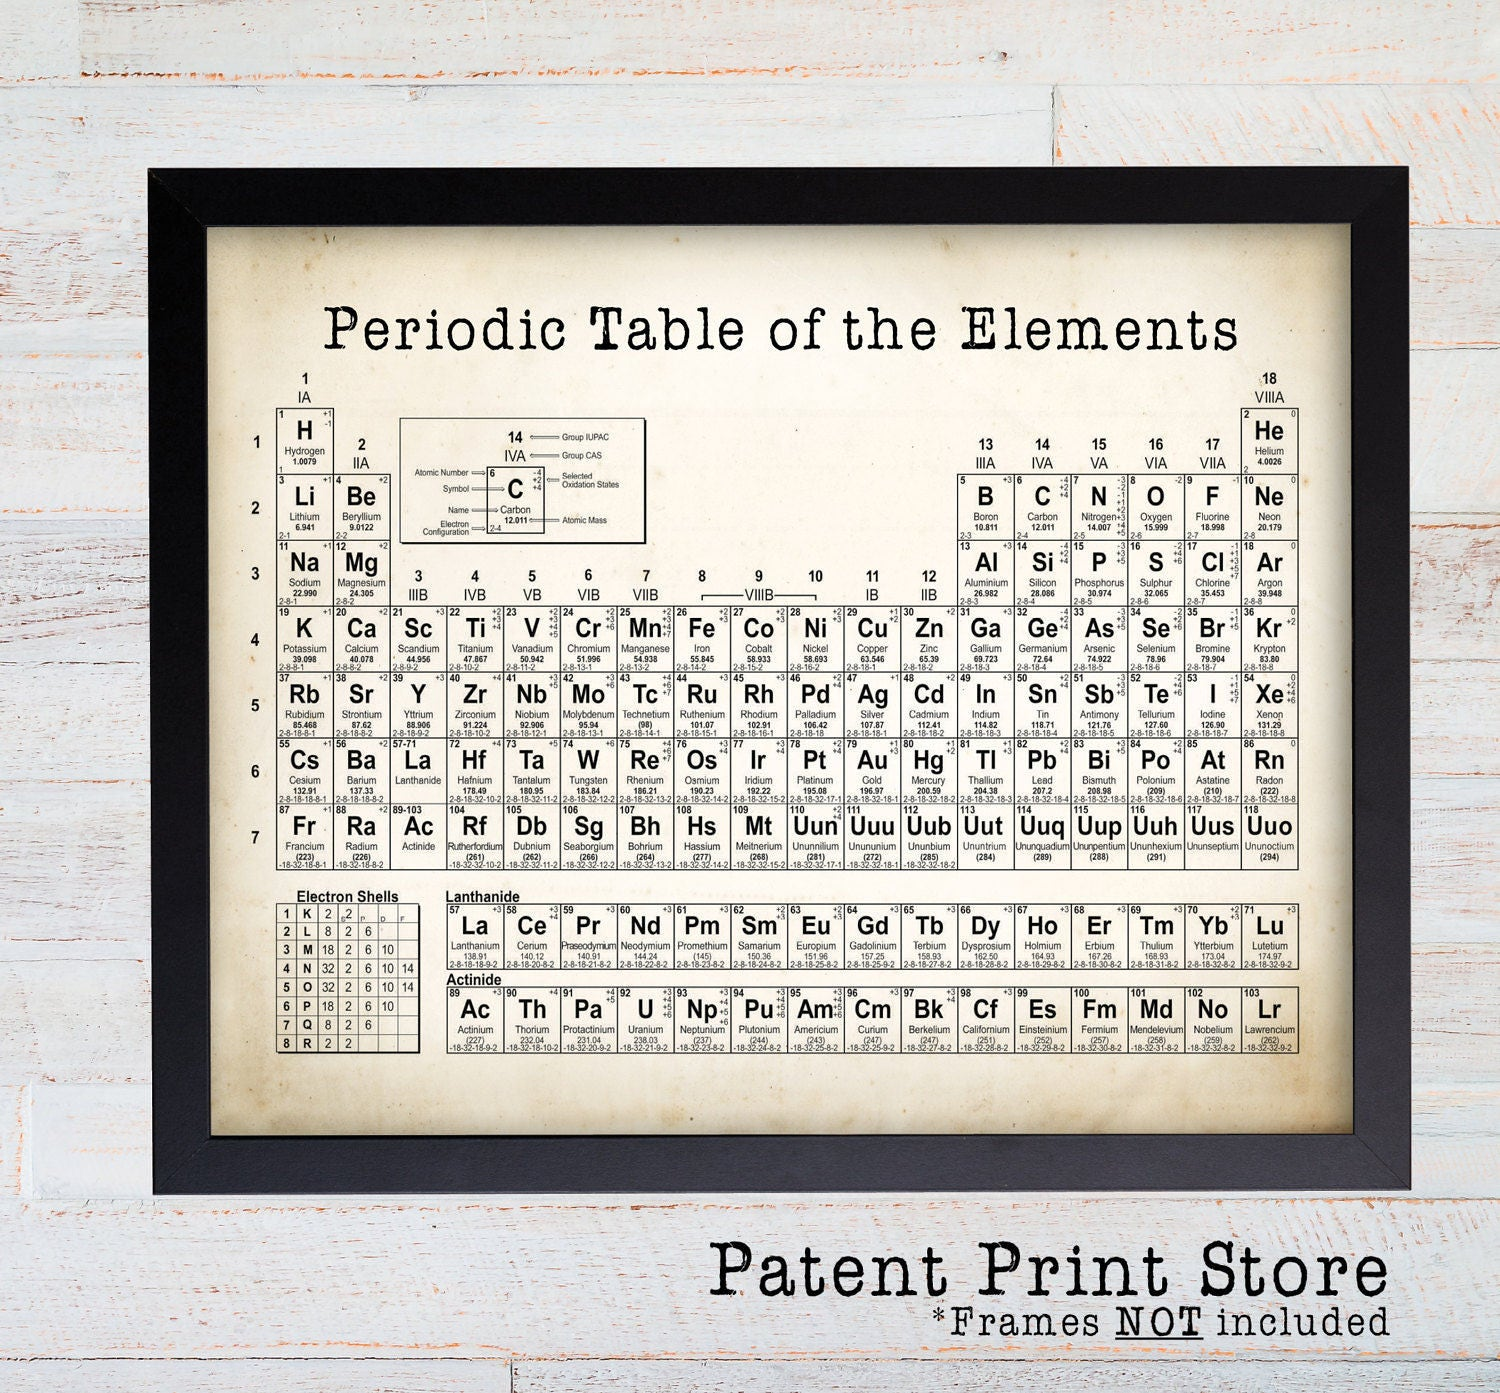 Periodic table of elements science wall art science poster periodic table of elements science wall art science poster chemistry poster science art lab science laboratory organic chemistry 34 urtaz Gallery